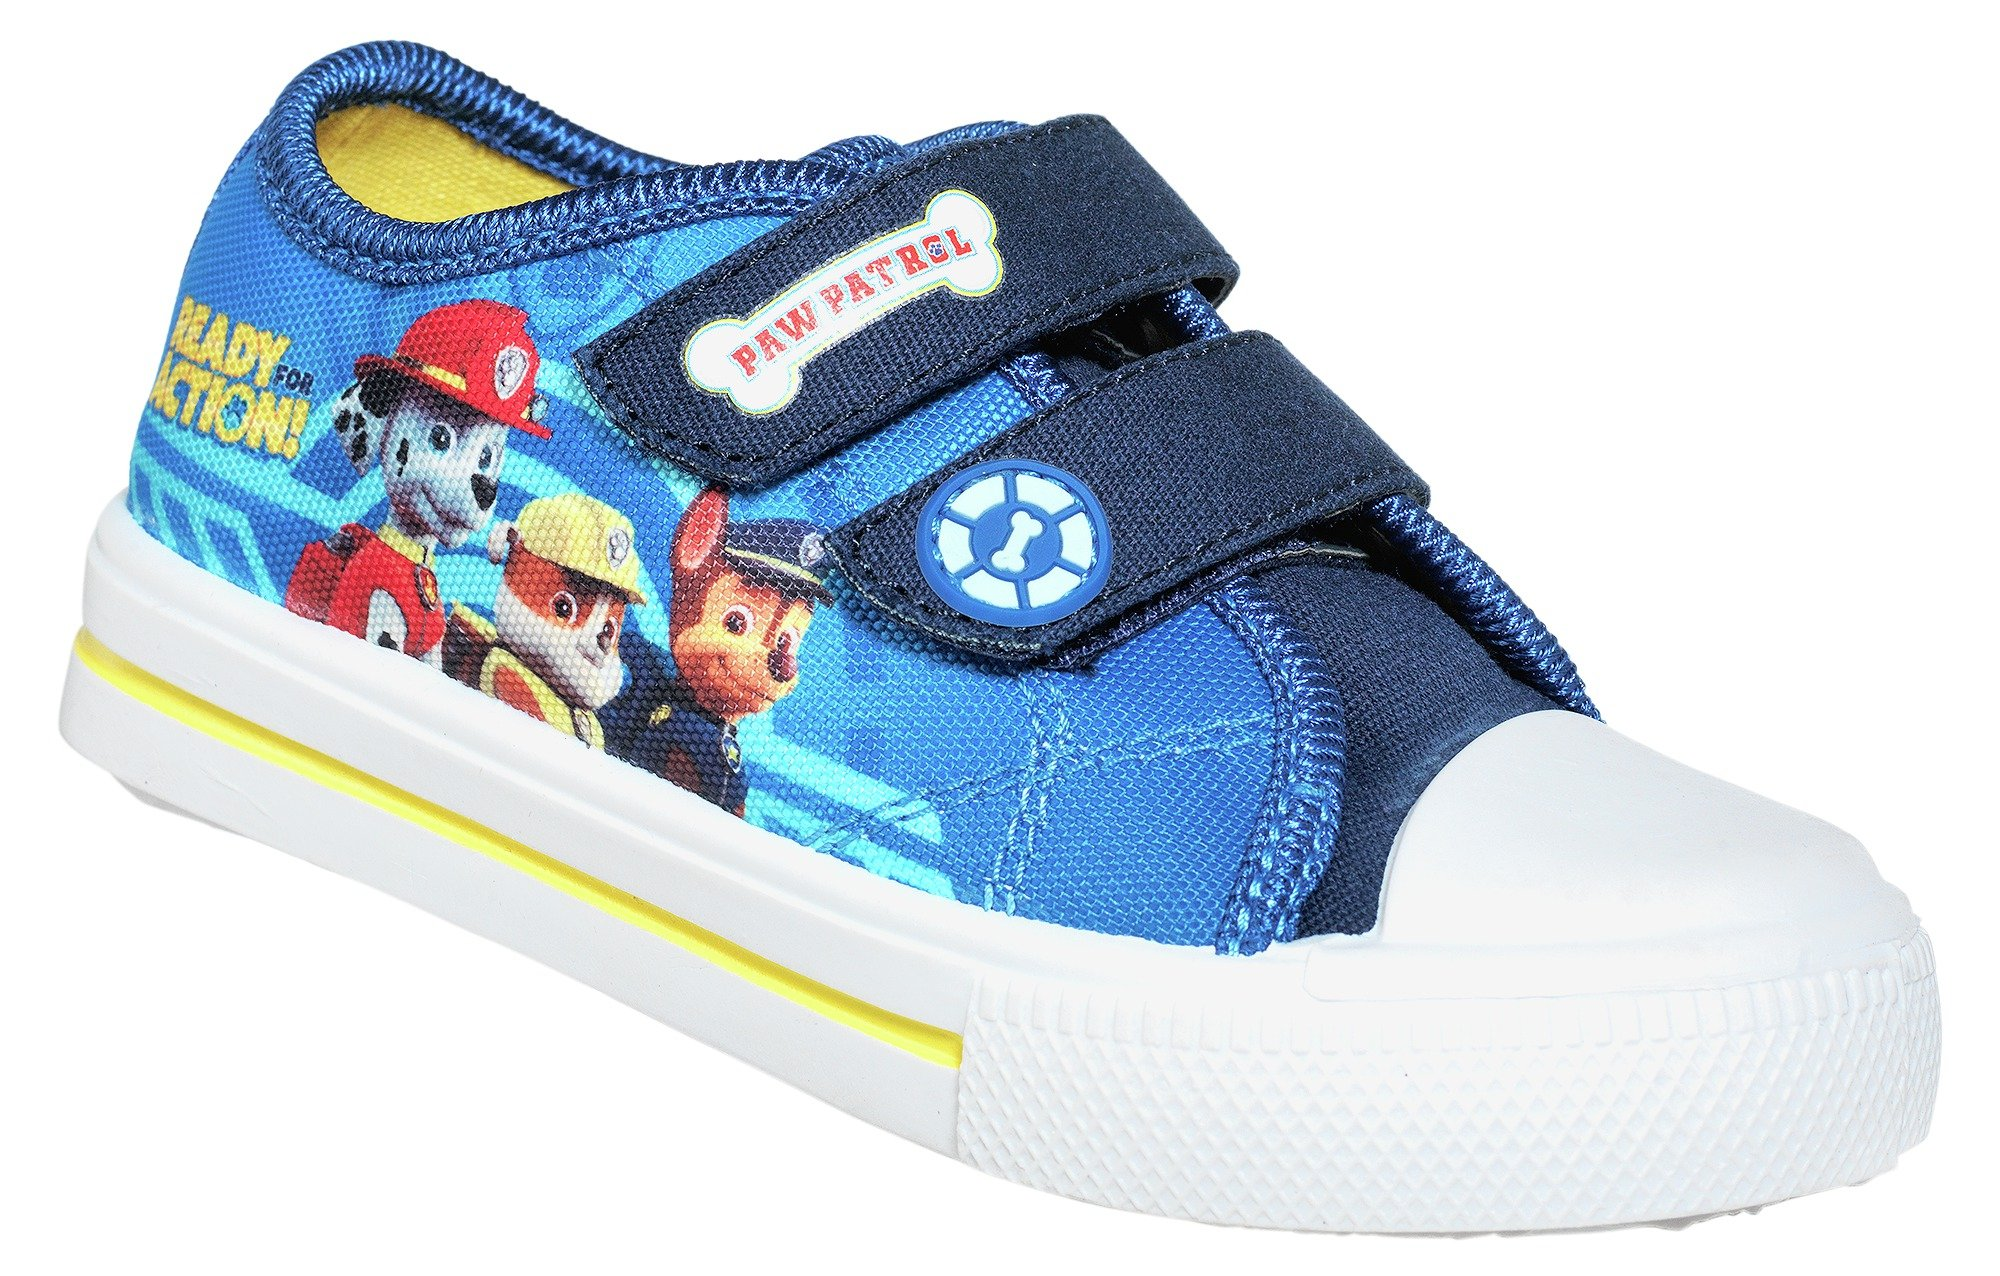 Image of PAW Patrol Blue Canvas Trainers - Size 9